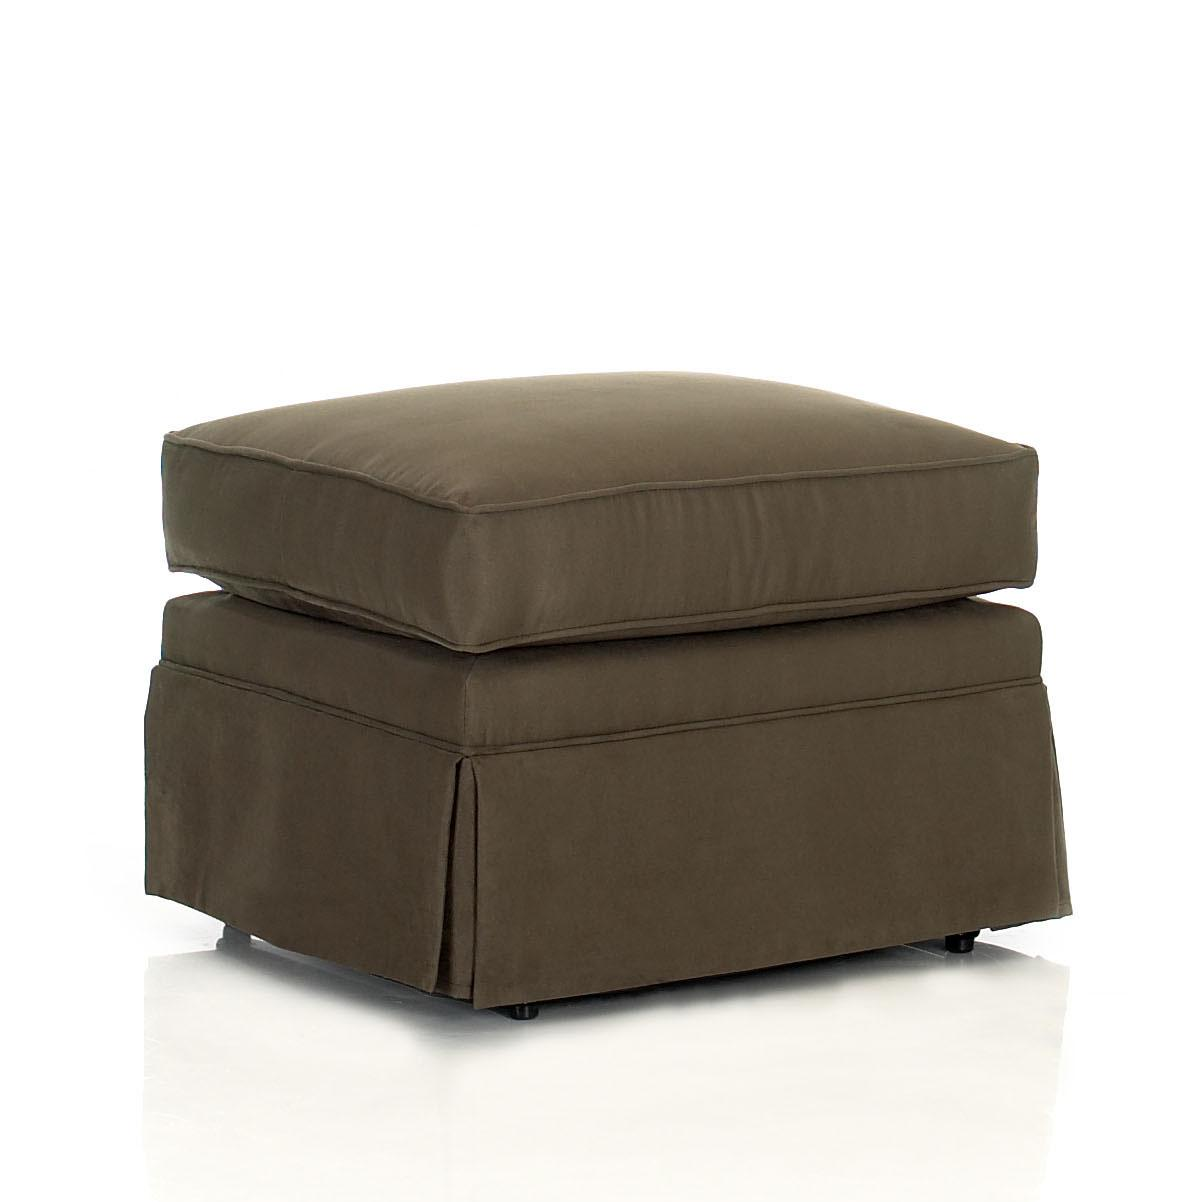 Chairs and Accents Carolina Ottoman by Klaussner at Johnny Janosik